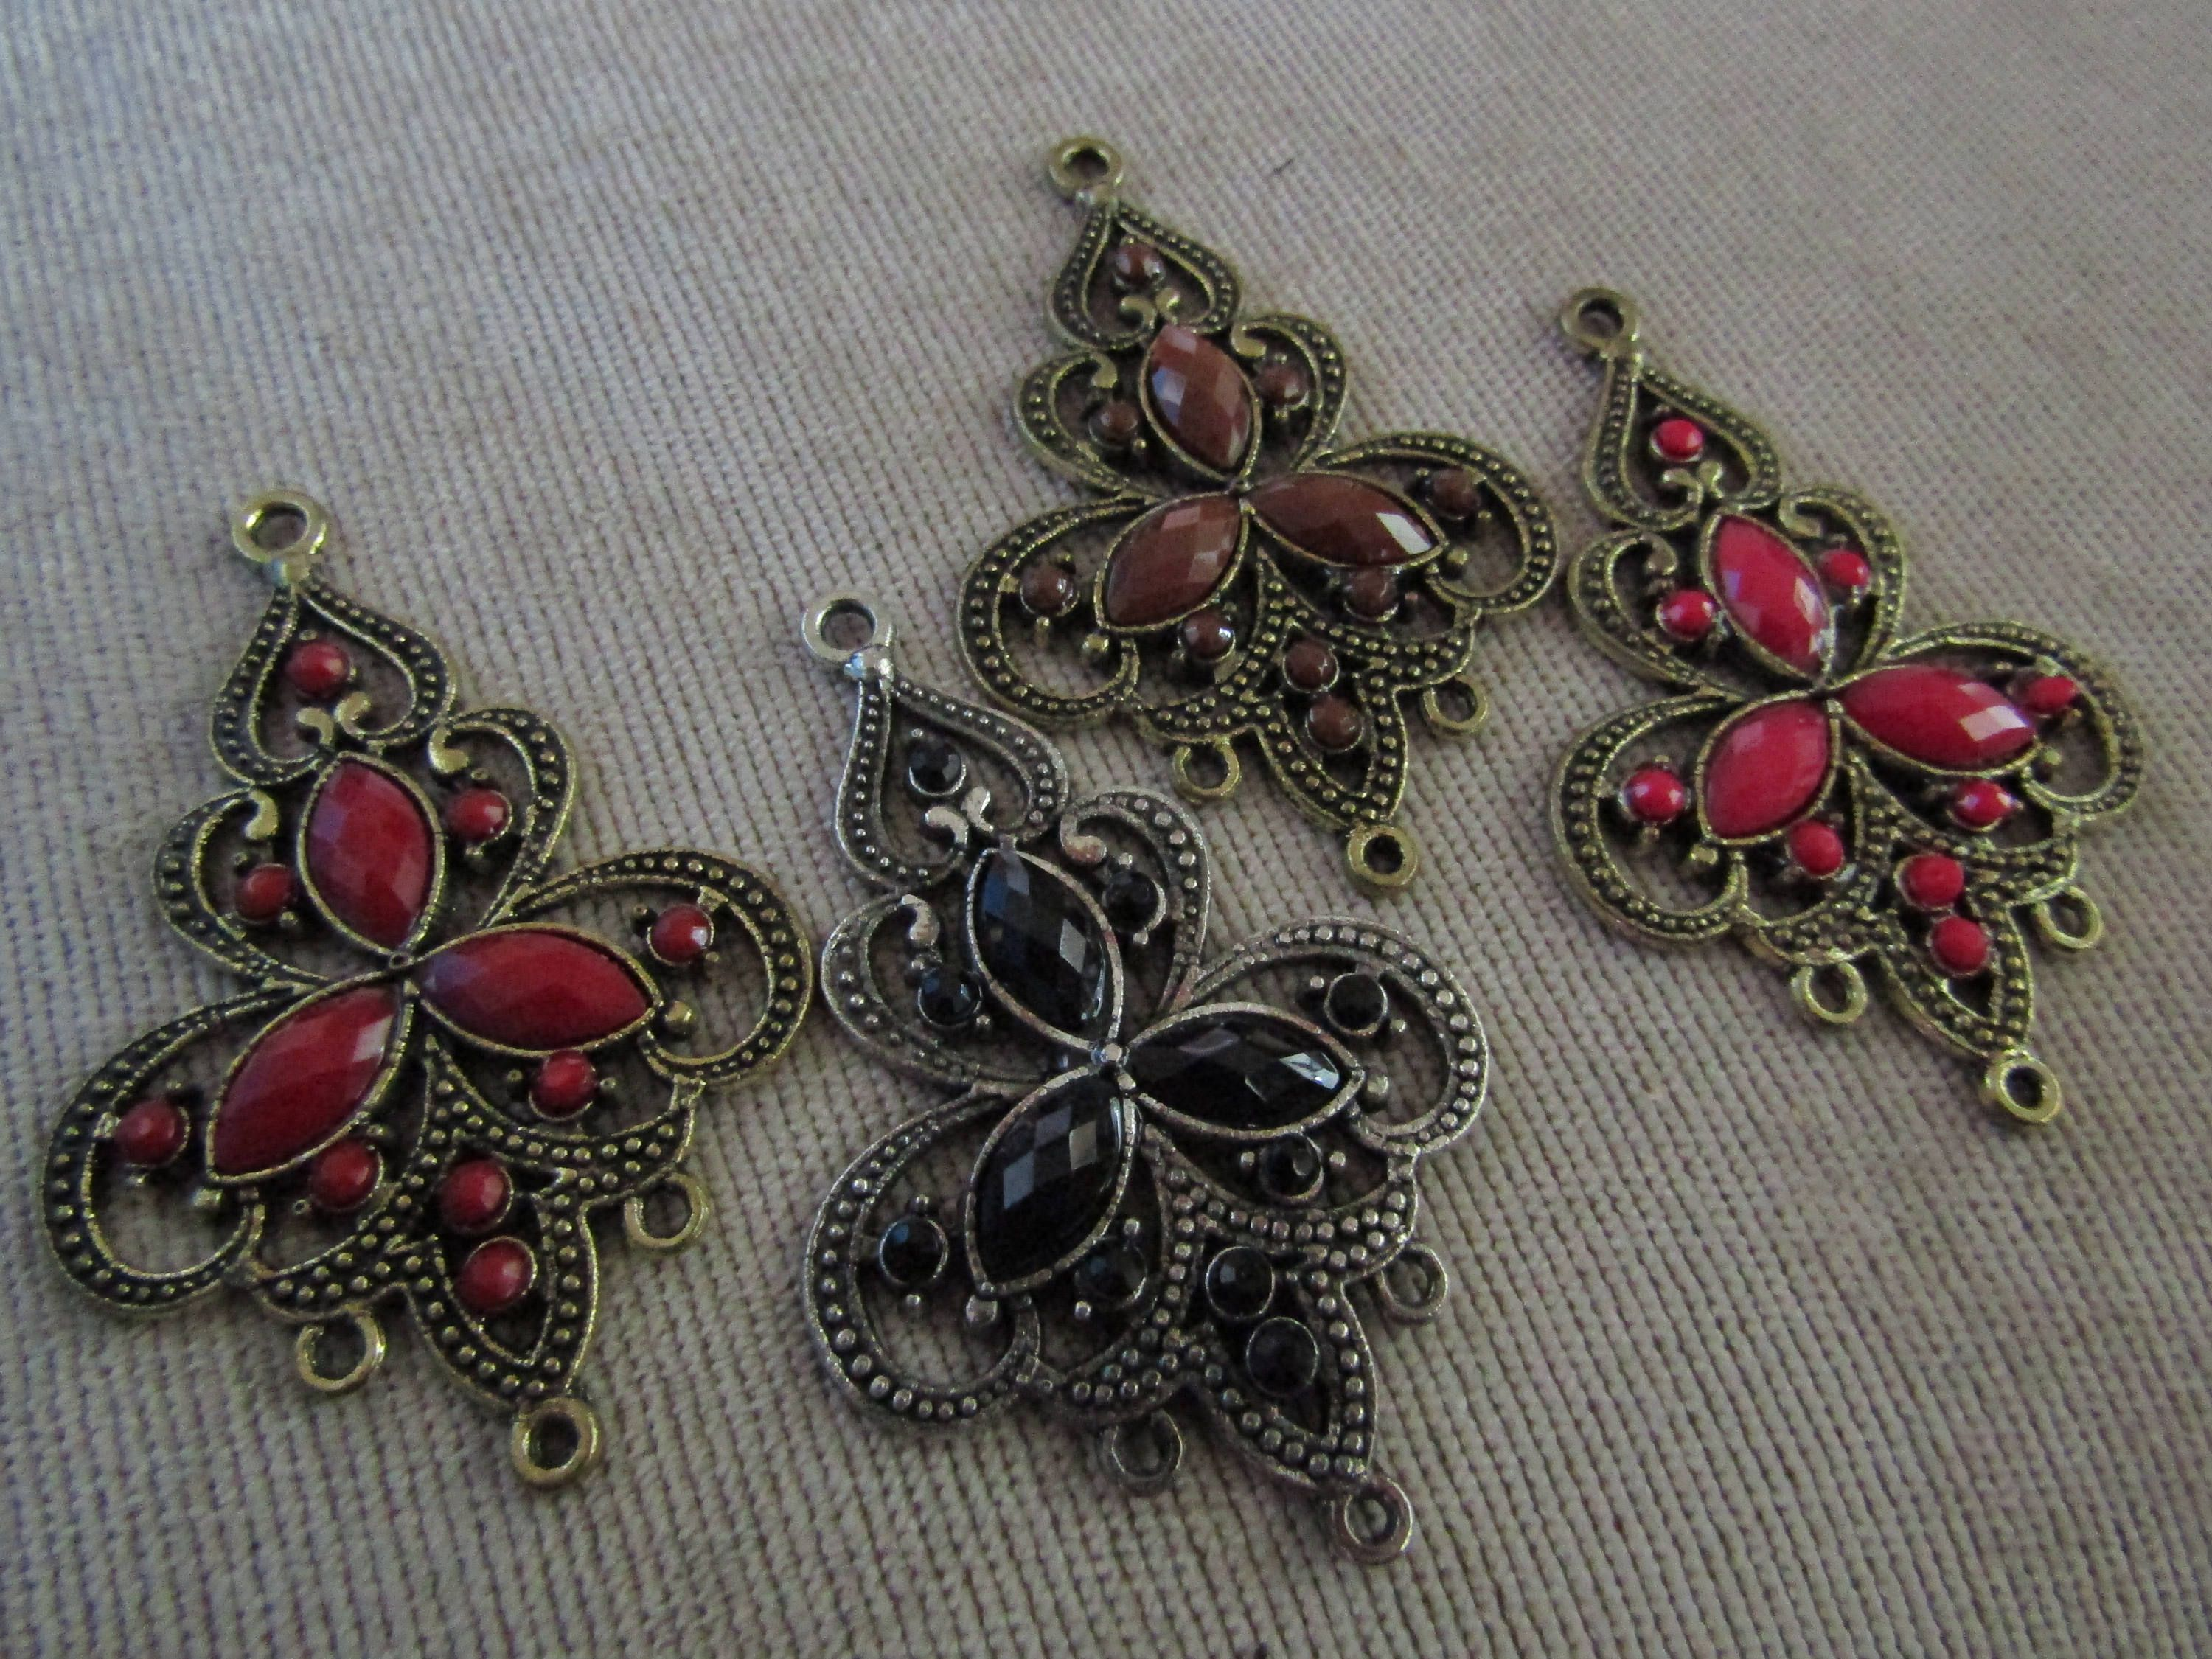 Chandelier earring findings metal rhinestones faceted 4 colors black chandelier earring findings metal rhinestones faceted 4 colors black brown deep red dark pink antique silver arubaitofo Image collections